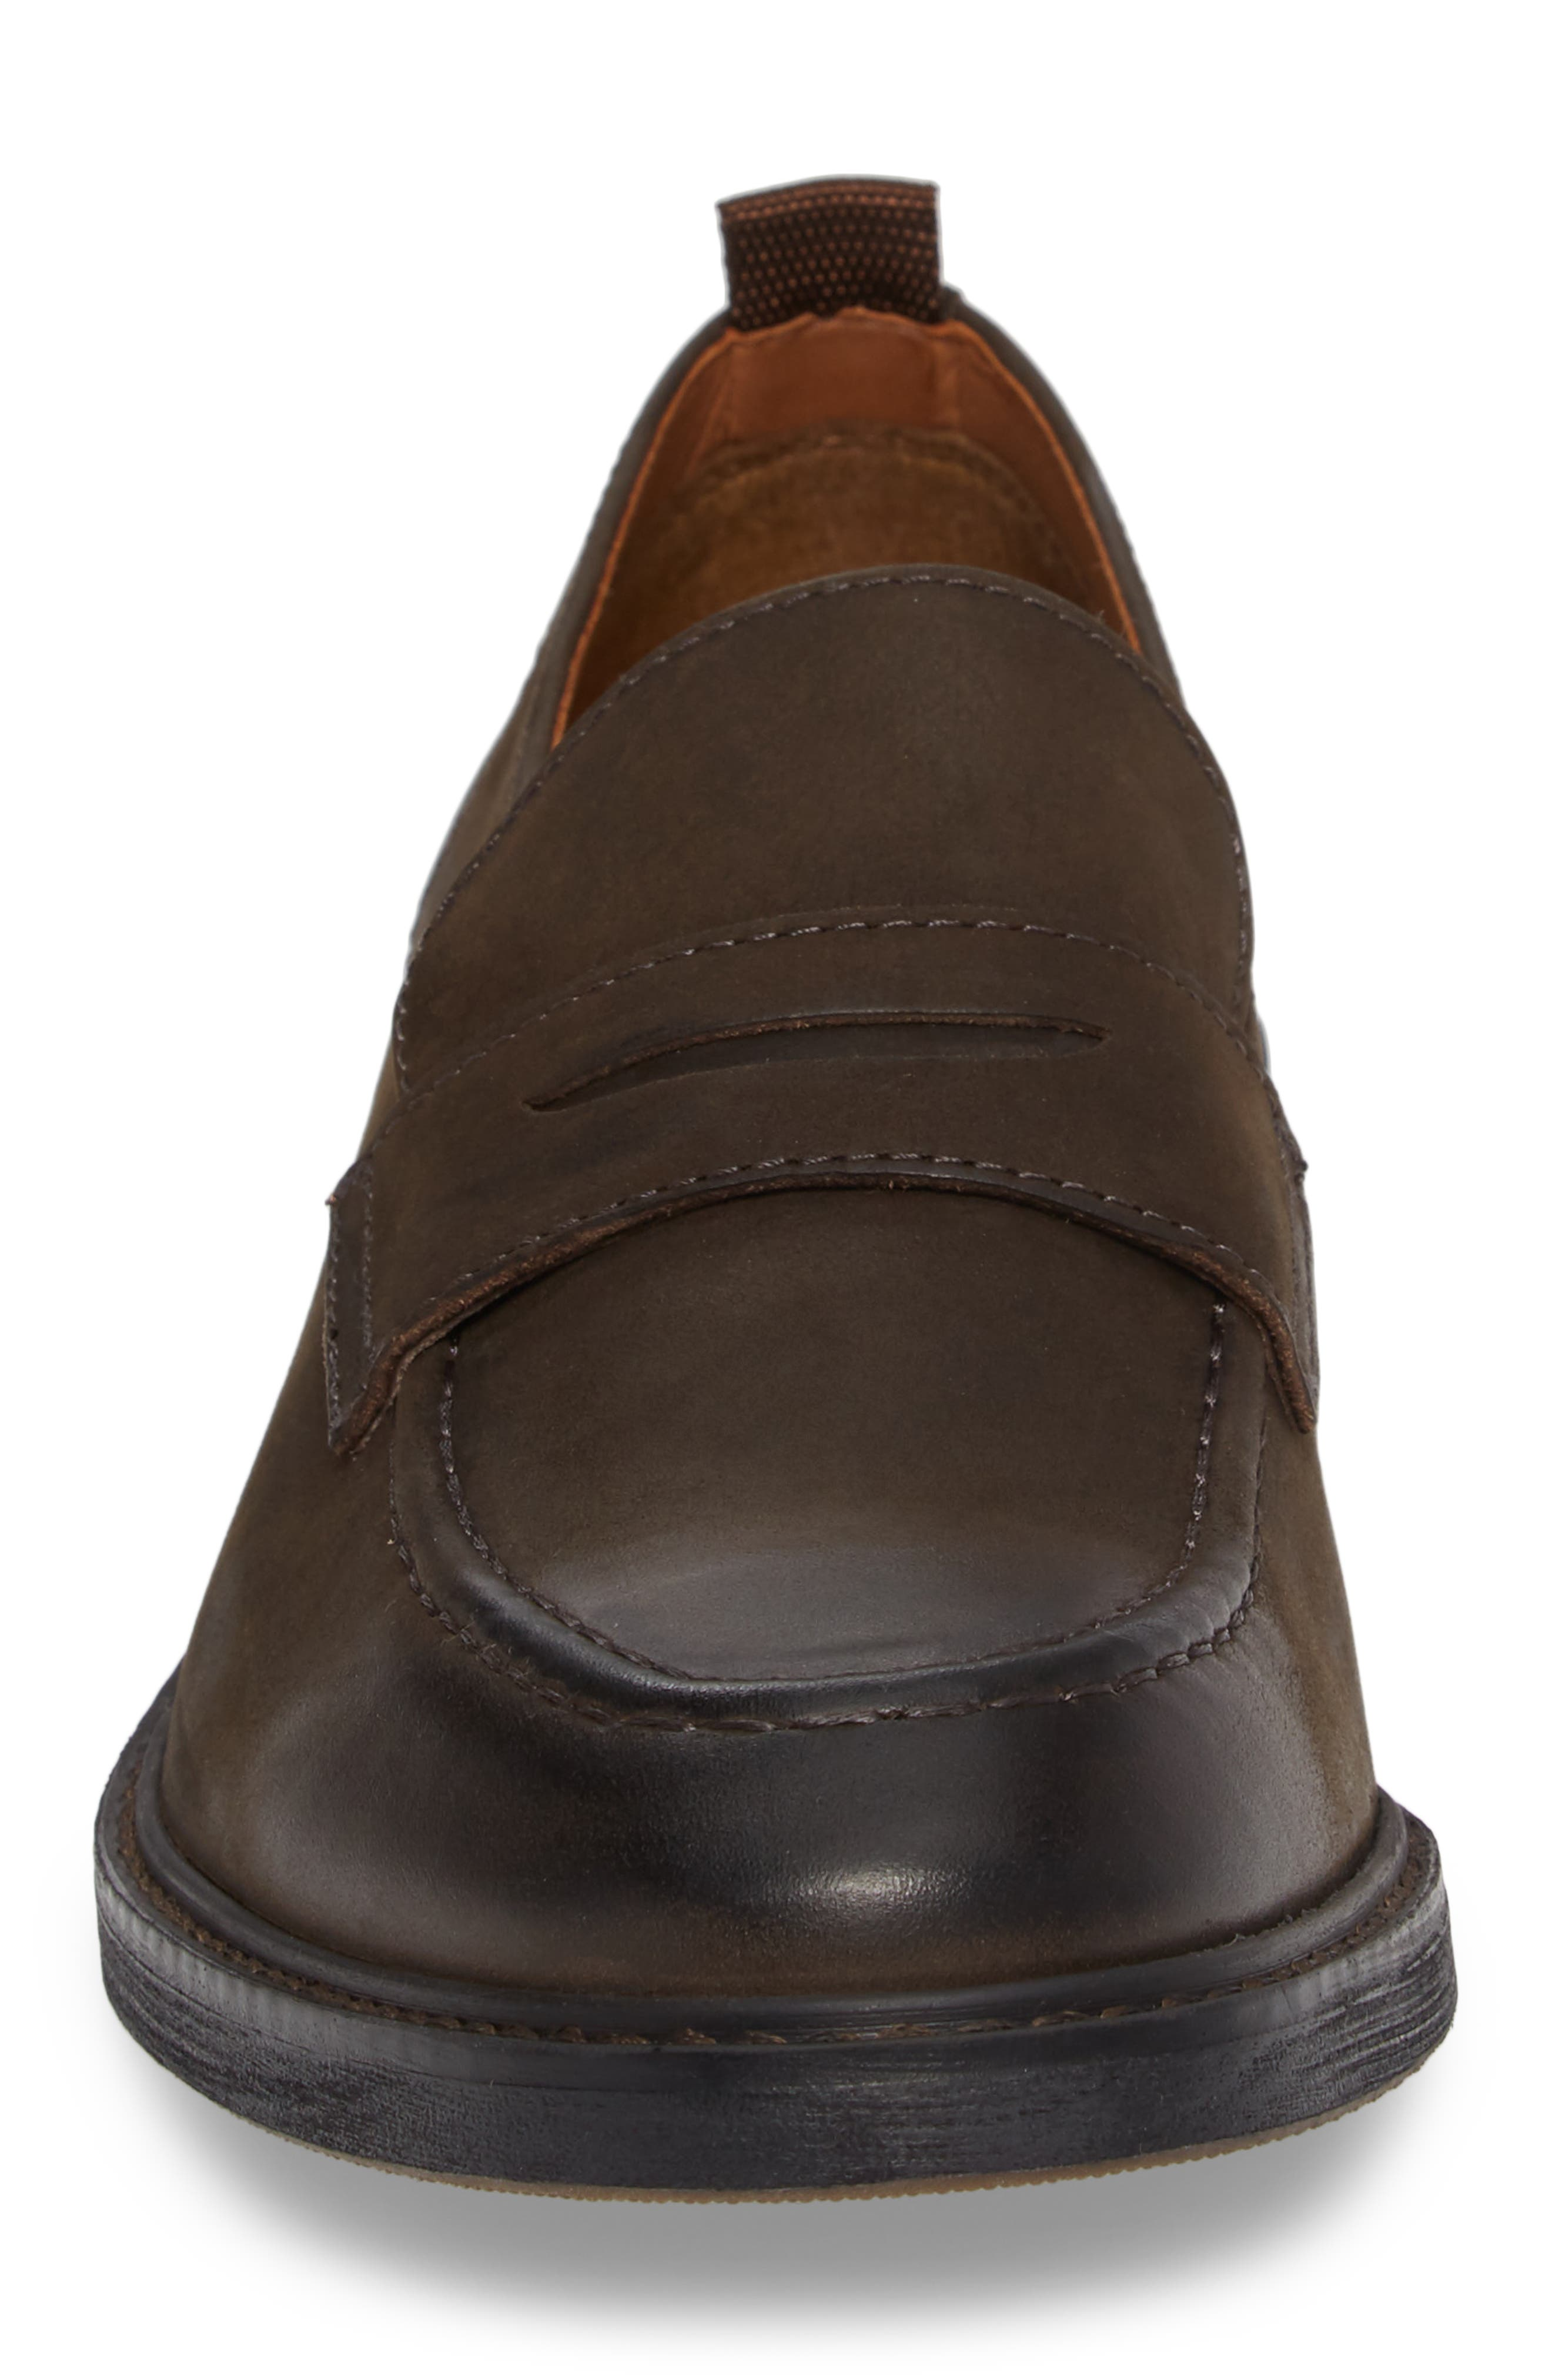 Harrington Penny Loafer,                             Alternate thumbnail 4, color,                             Chocolate Leather